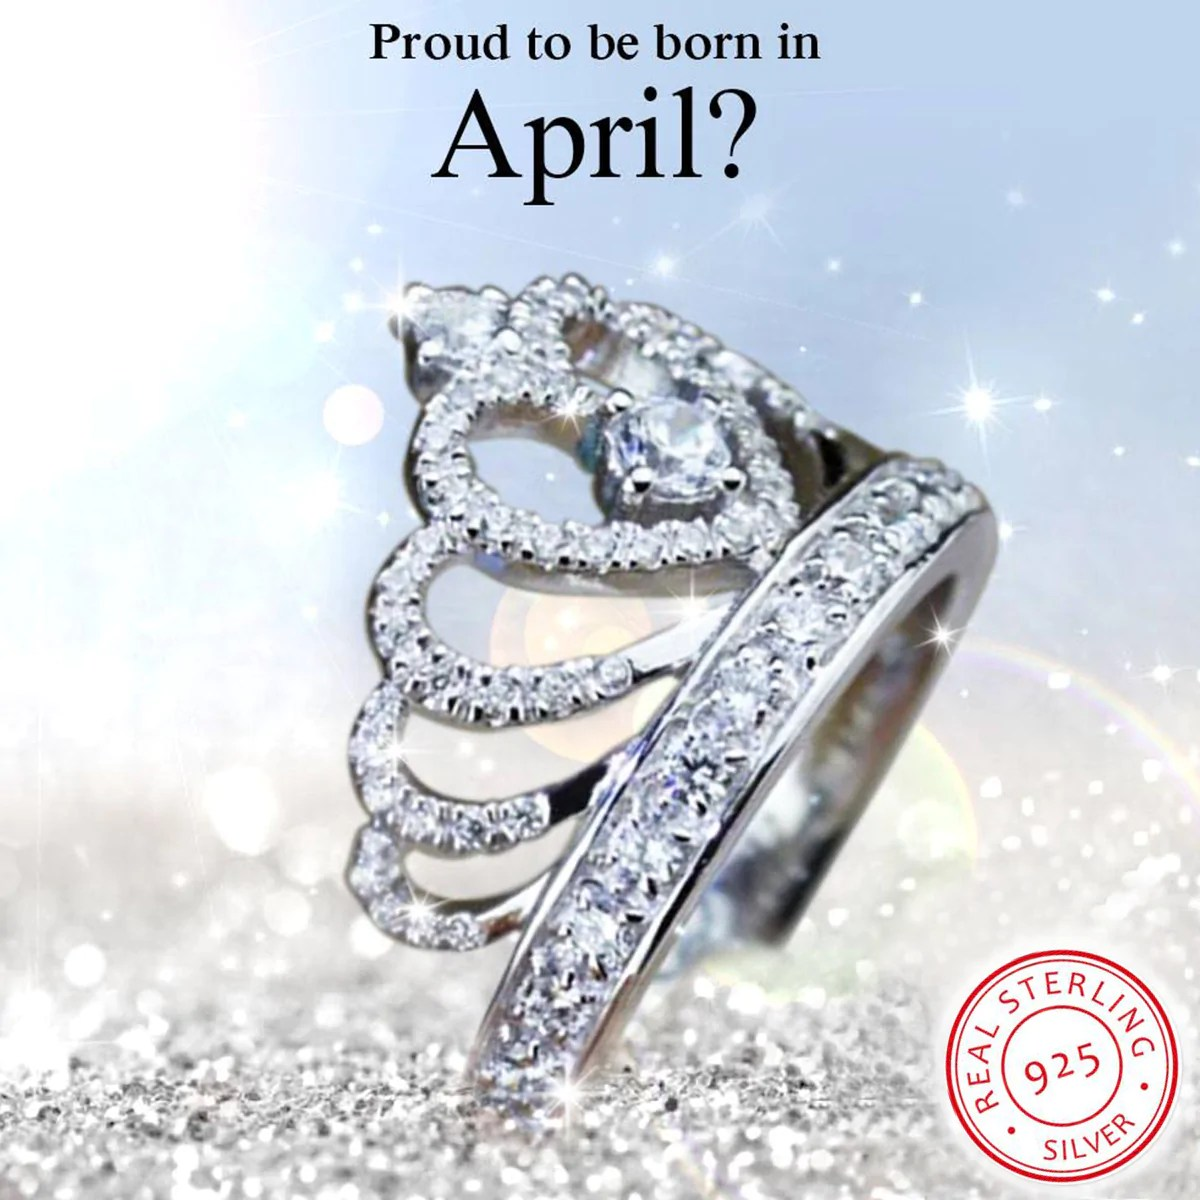 925 Sterling Silver April Birthstone Ring Madison Audrey